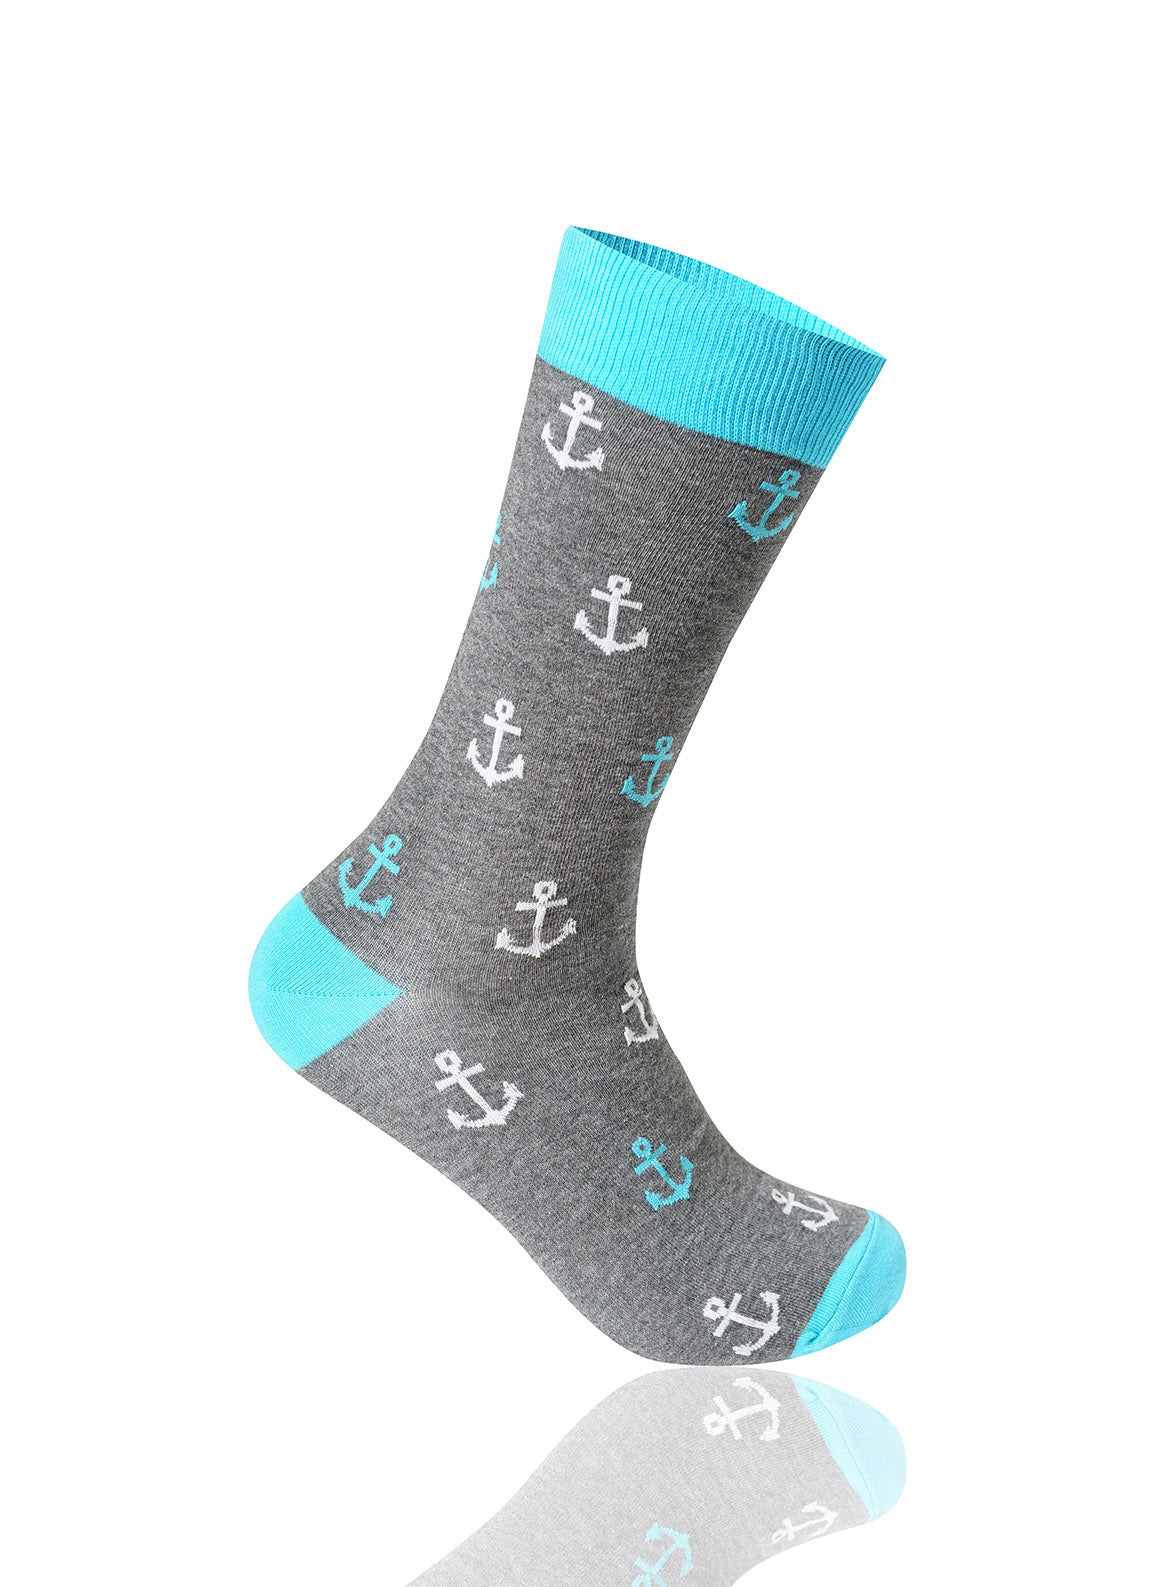 GRAY Anchor Novelty Socks - URBANCREWS